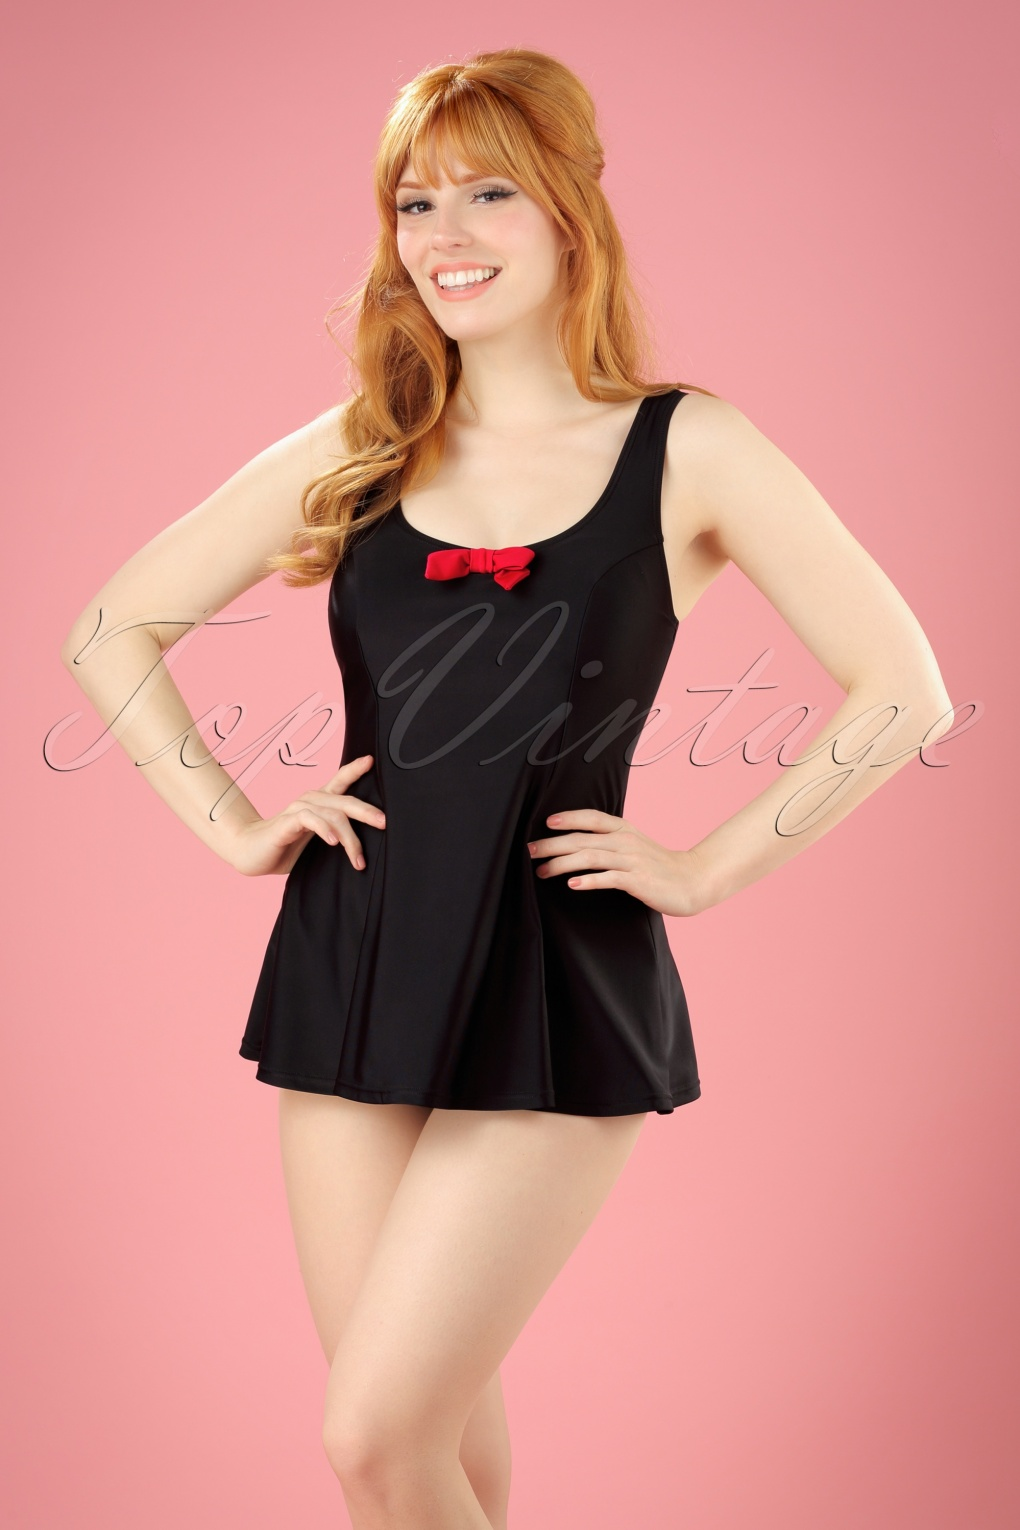 1950s Style Swimsuits, Bathing Suits, Swimwear TopVintage Exclusive  50s Shelley Bow Swimsuit in Black and Red £49.58 AT vintagedancer.com